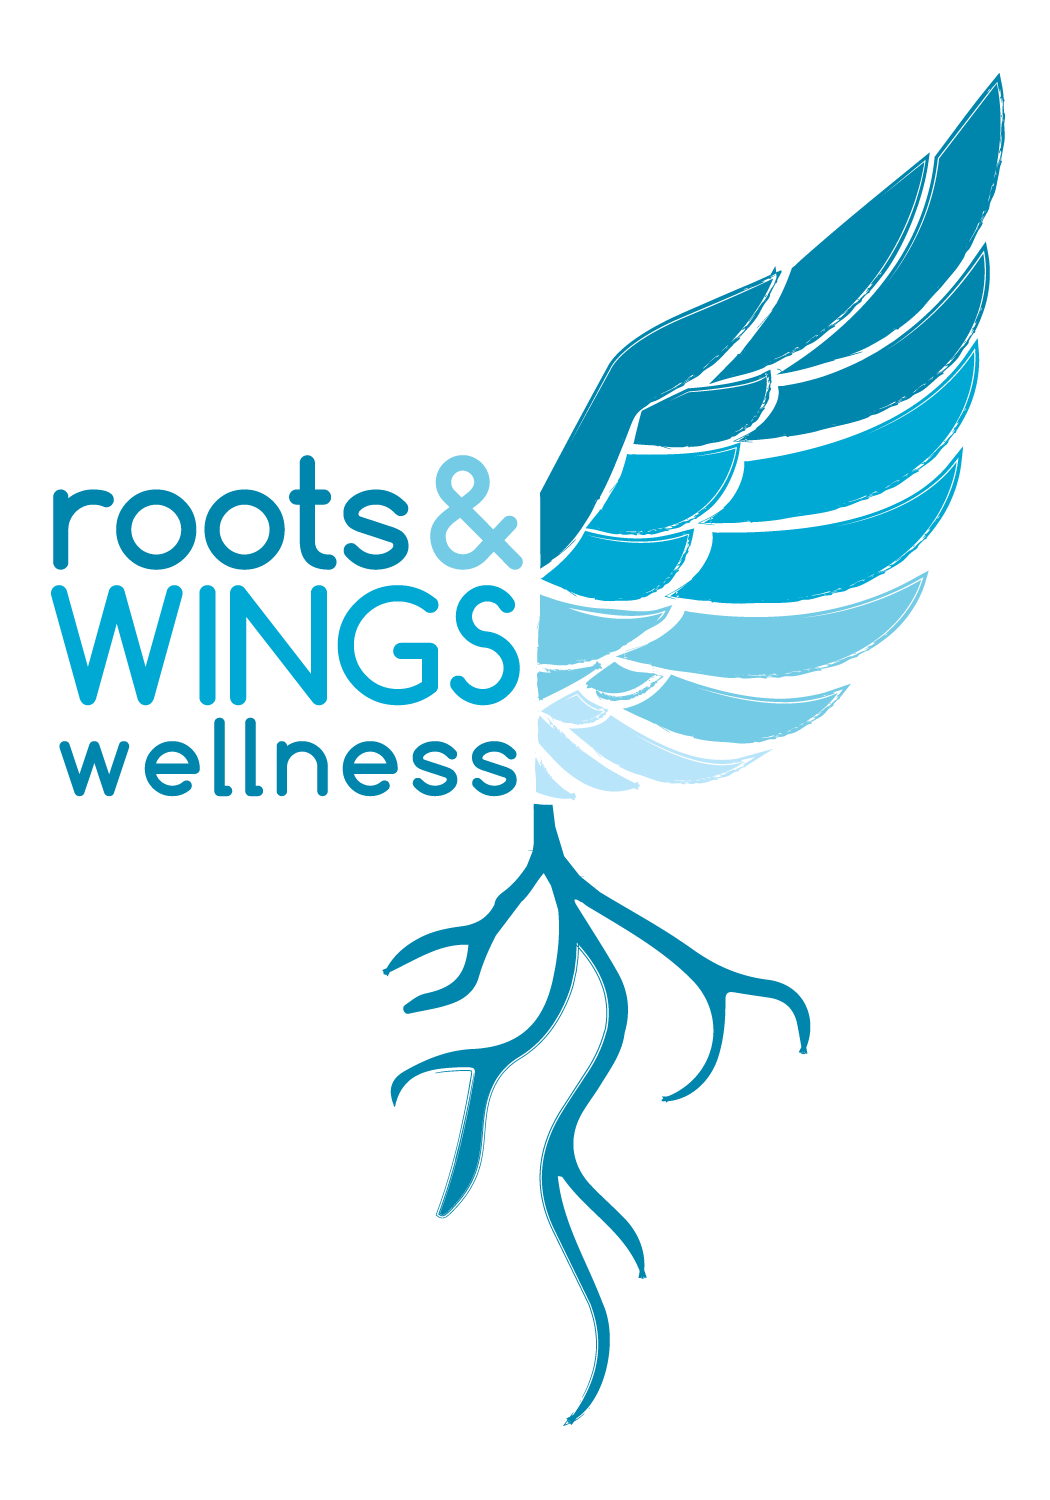 Roots And Wings Wellness